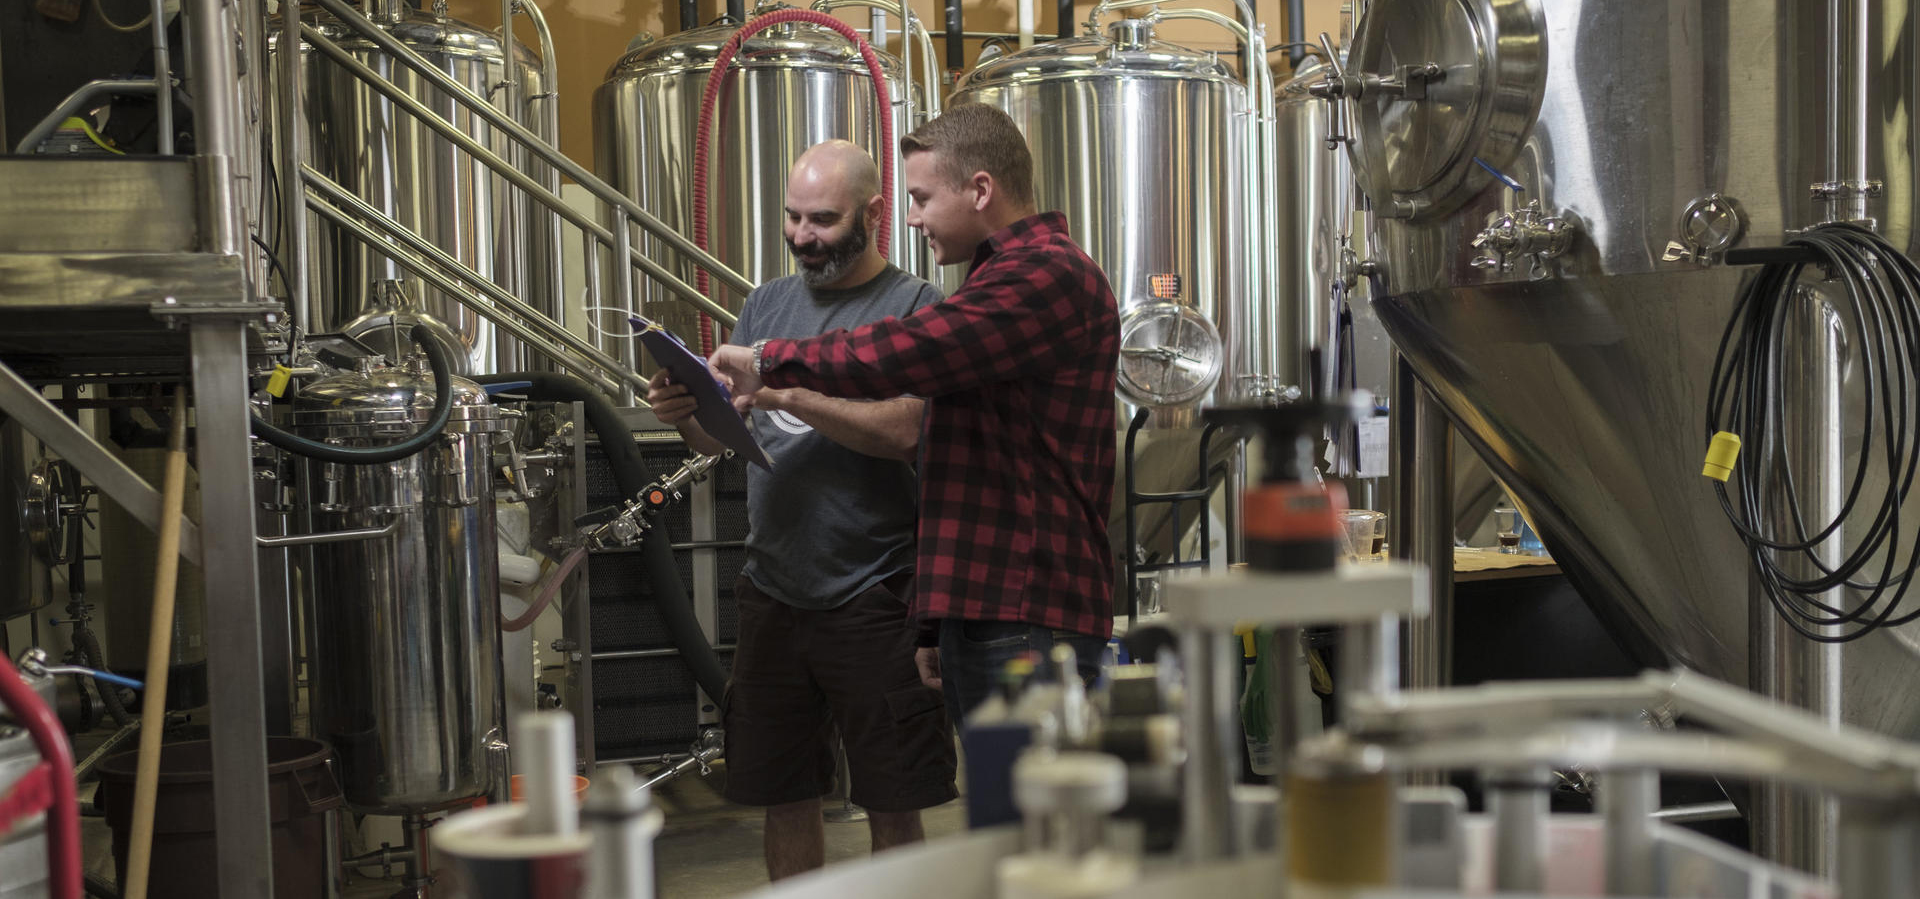 Science alumn Steve Innocente and co-op student Tyler Ball discussing content on a clipboard in the brewery